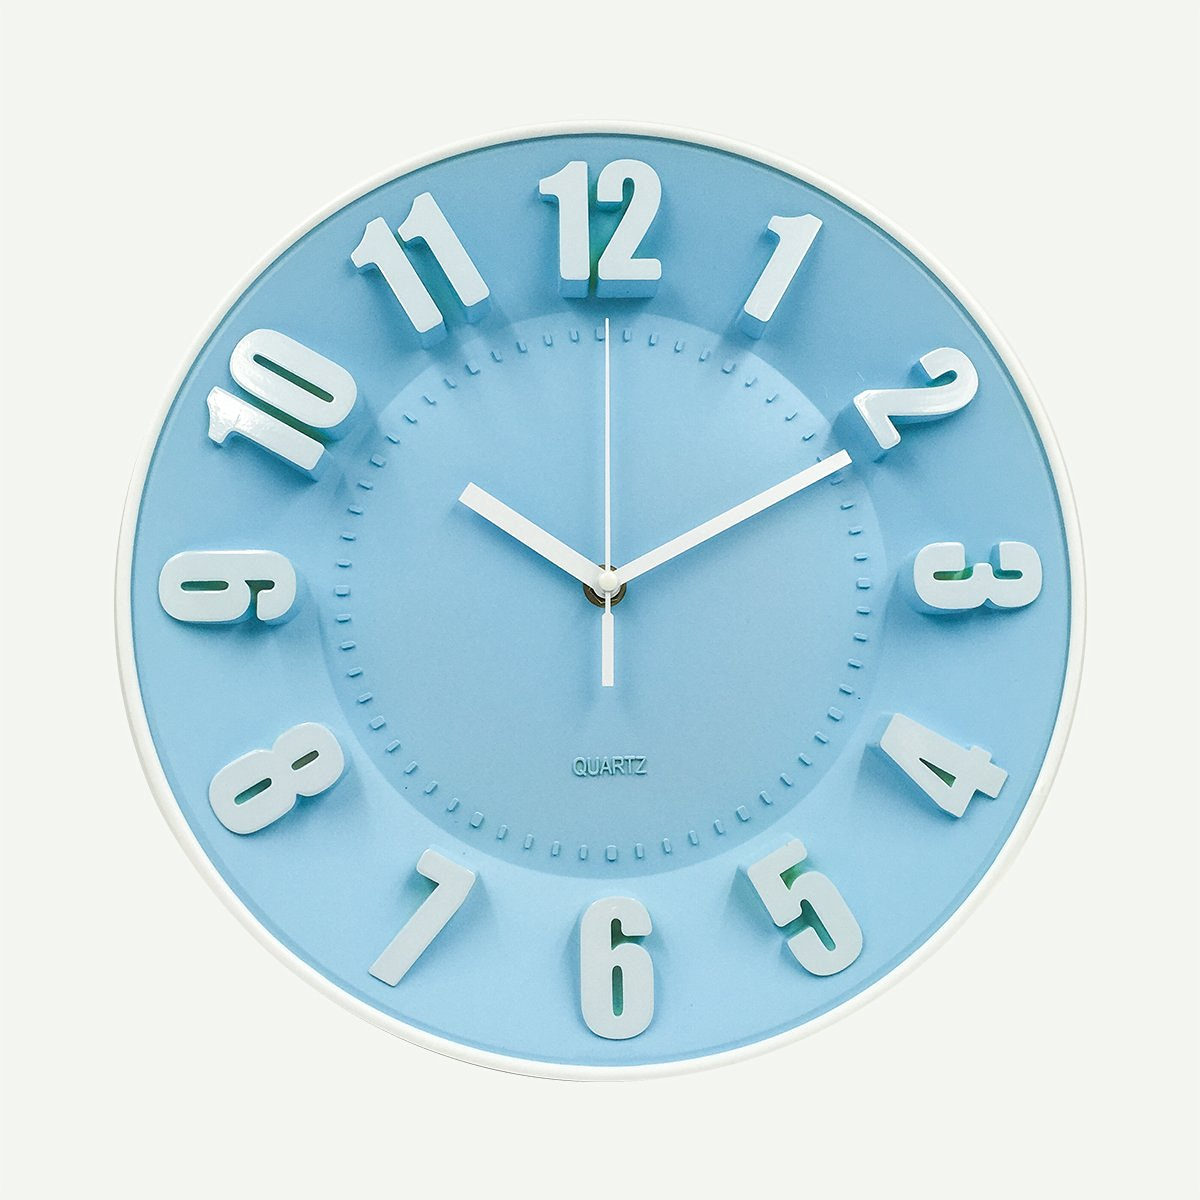 Buy Hippih 12 Inches 3d Numerals Modern Round Plastic Wall Clock